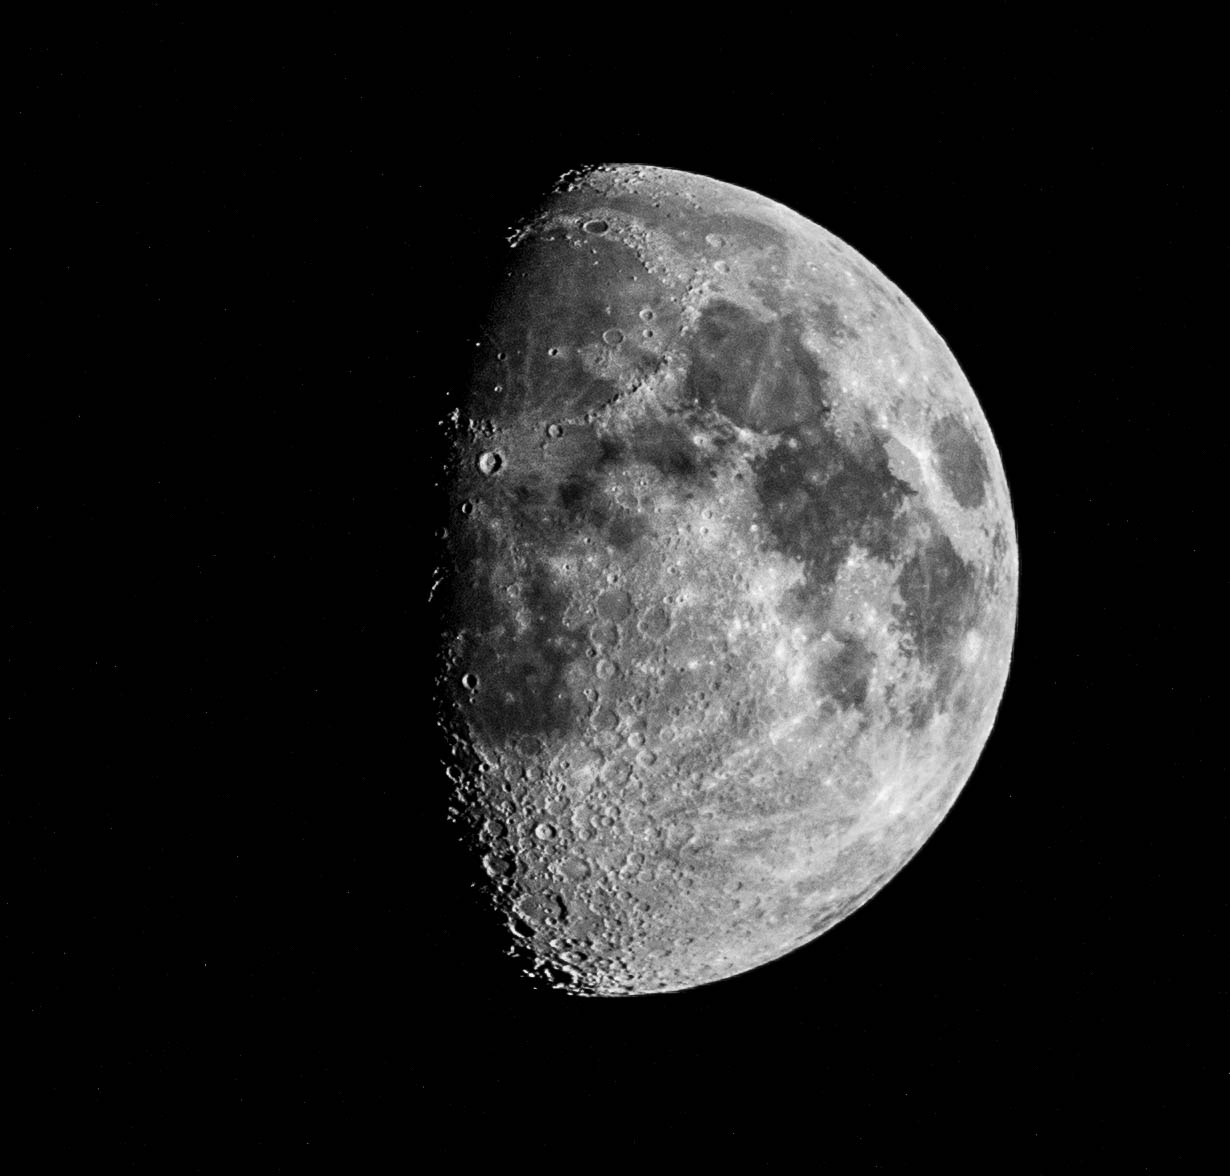 The moon by Graeme Keable